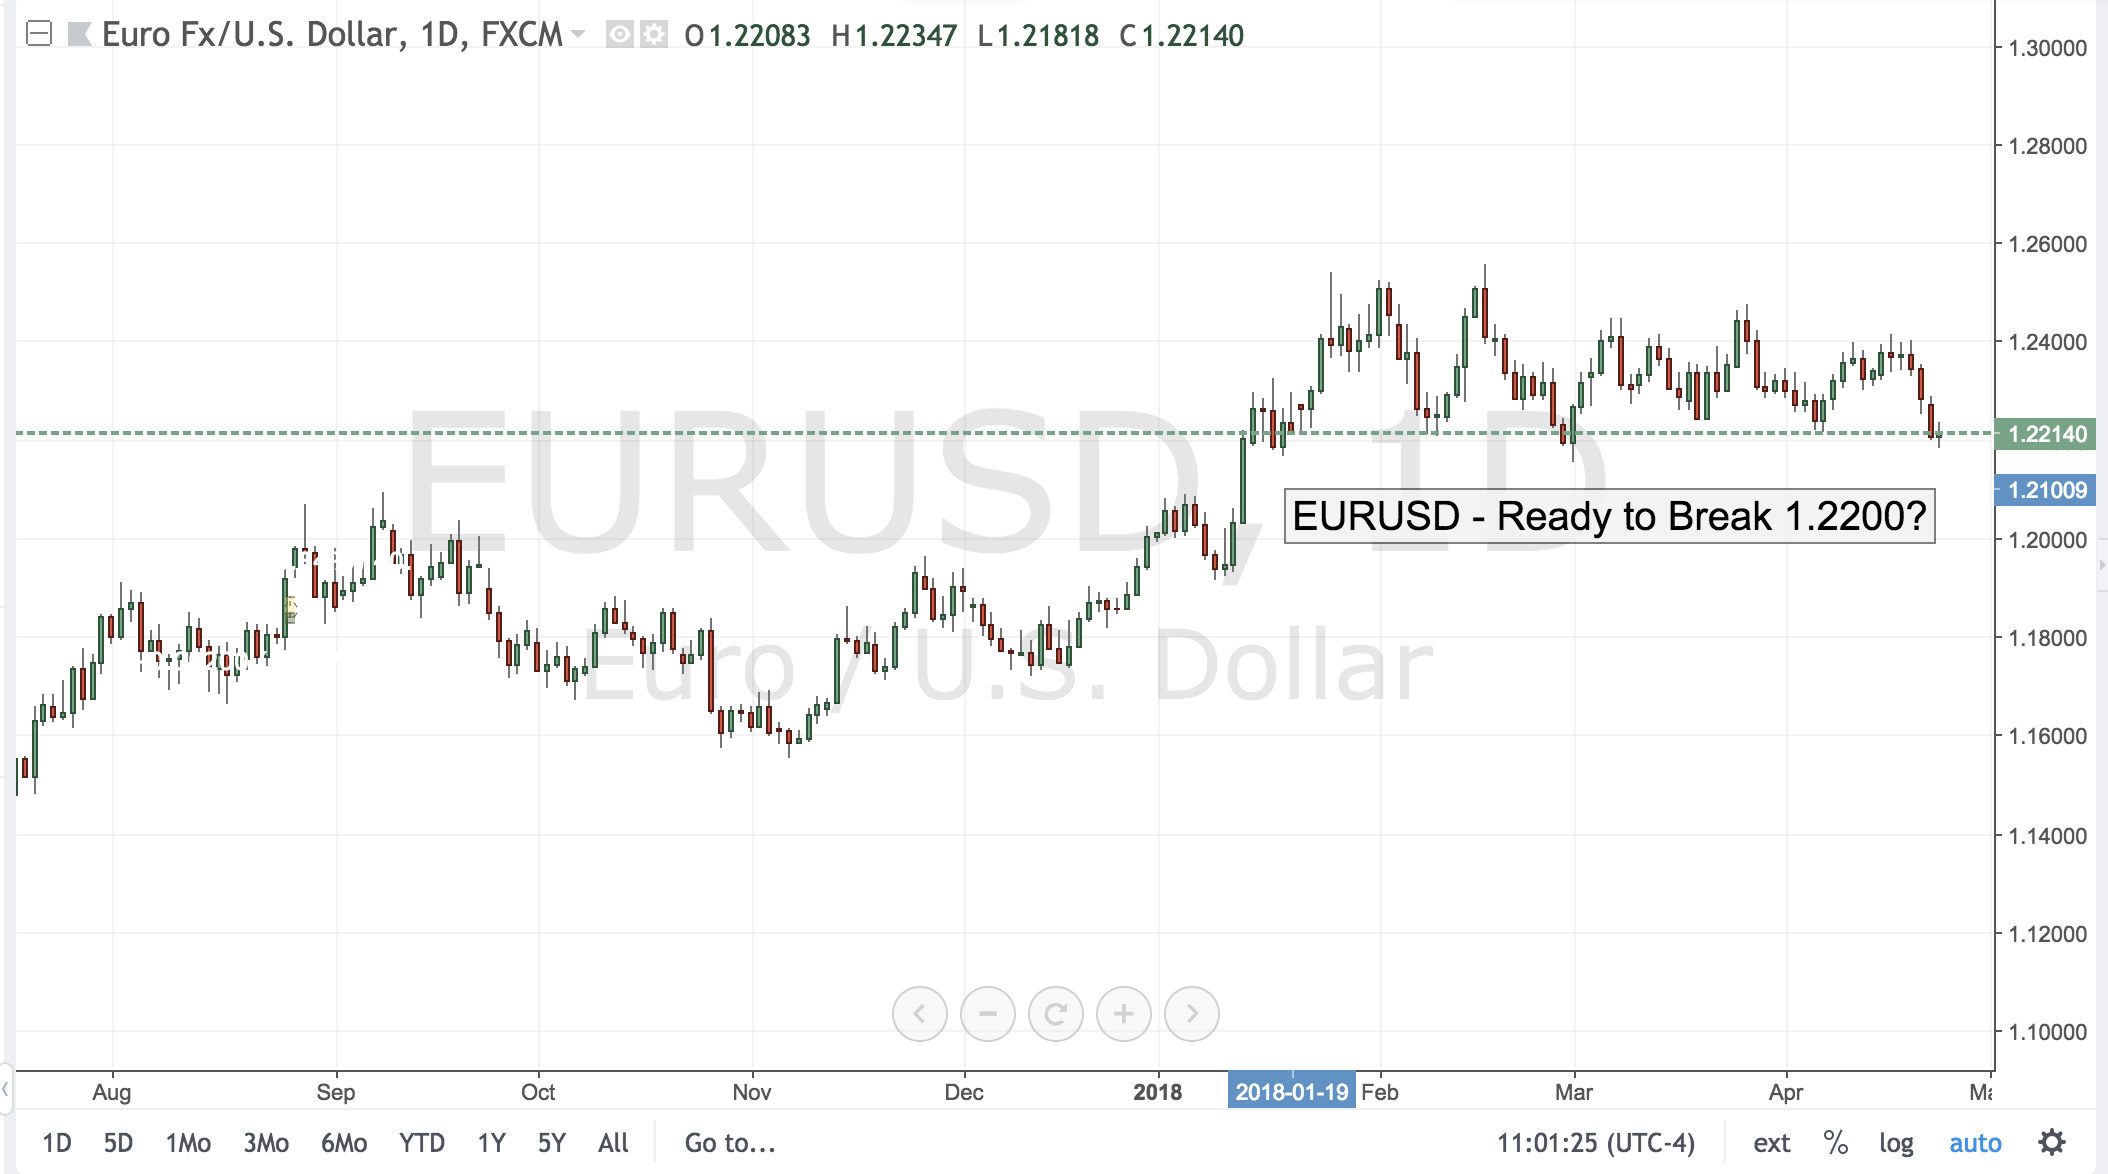 EURUSD – Ready to Break 1.2200?